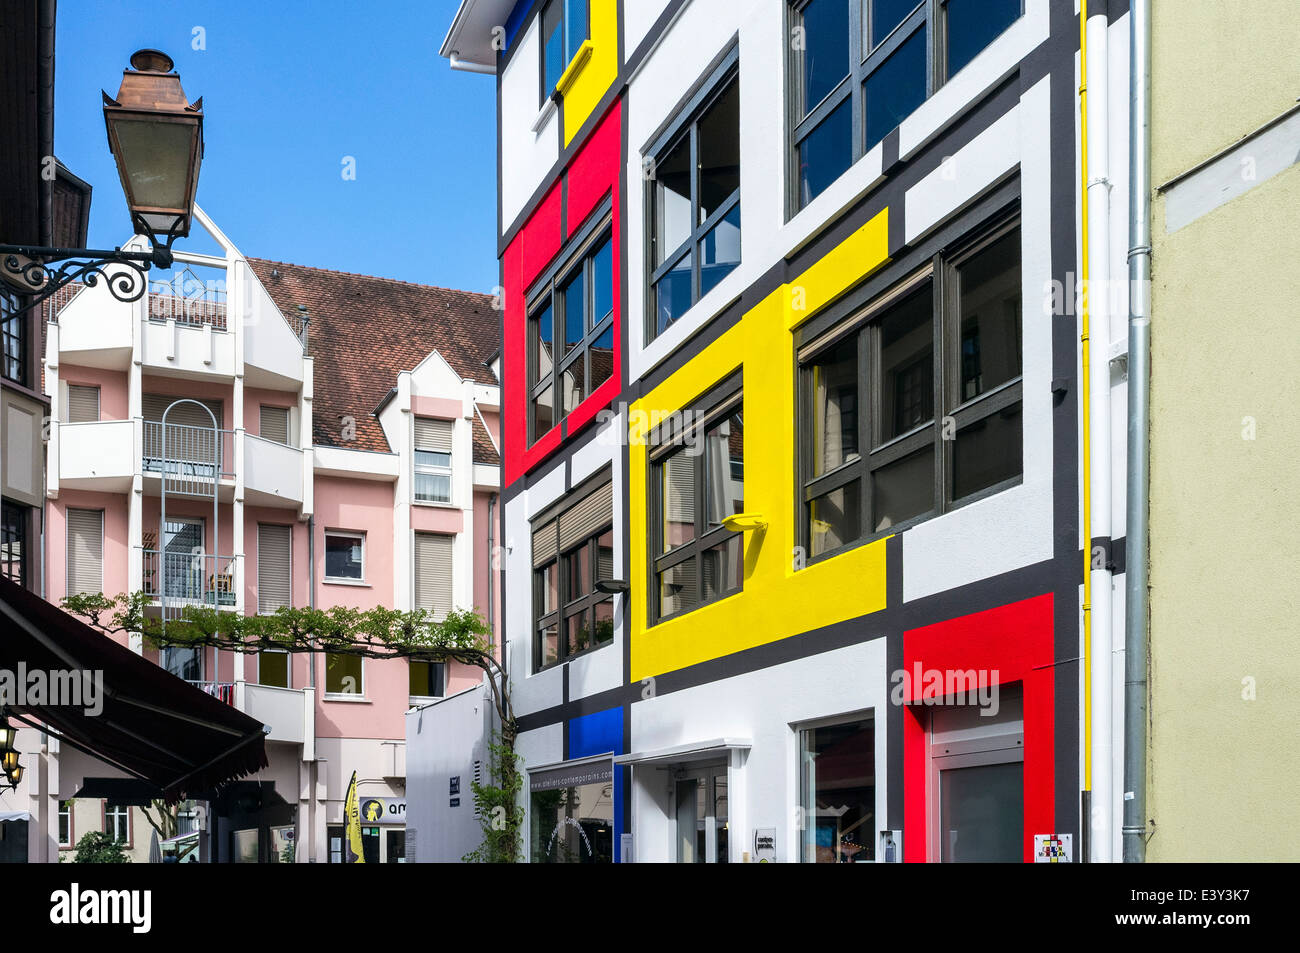 maison mondrian bed and breakfast house mulhouse alsace france stock photo 71281035 alamy. Black Bedroom Furniture Sets. Home Design Ideas